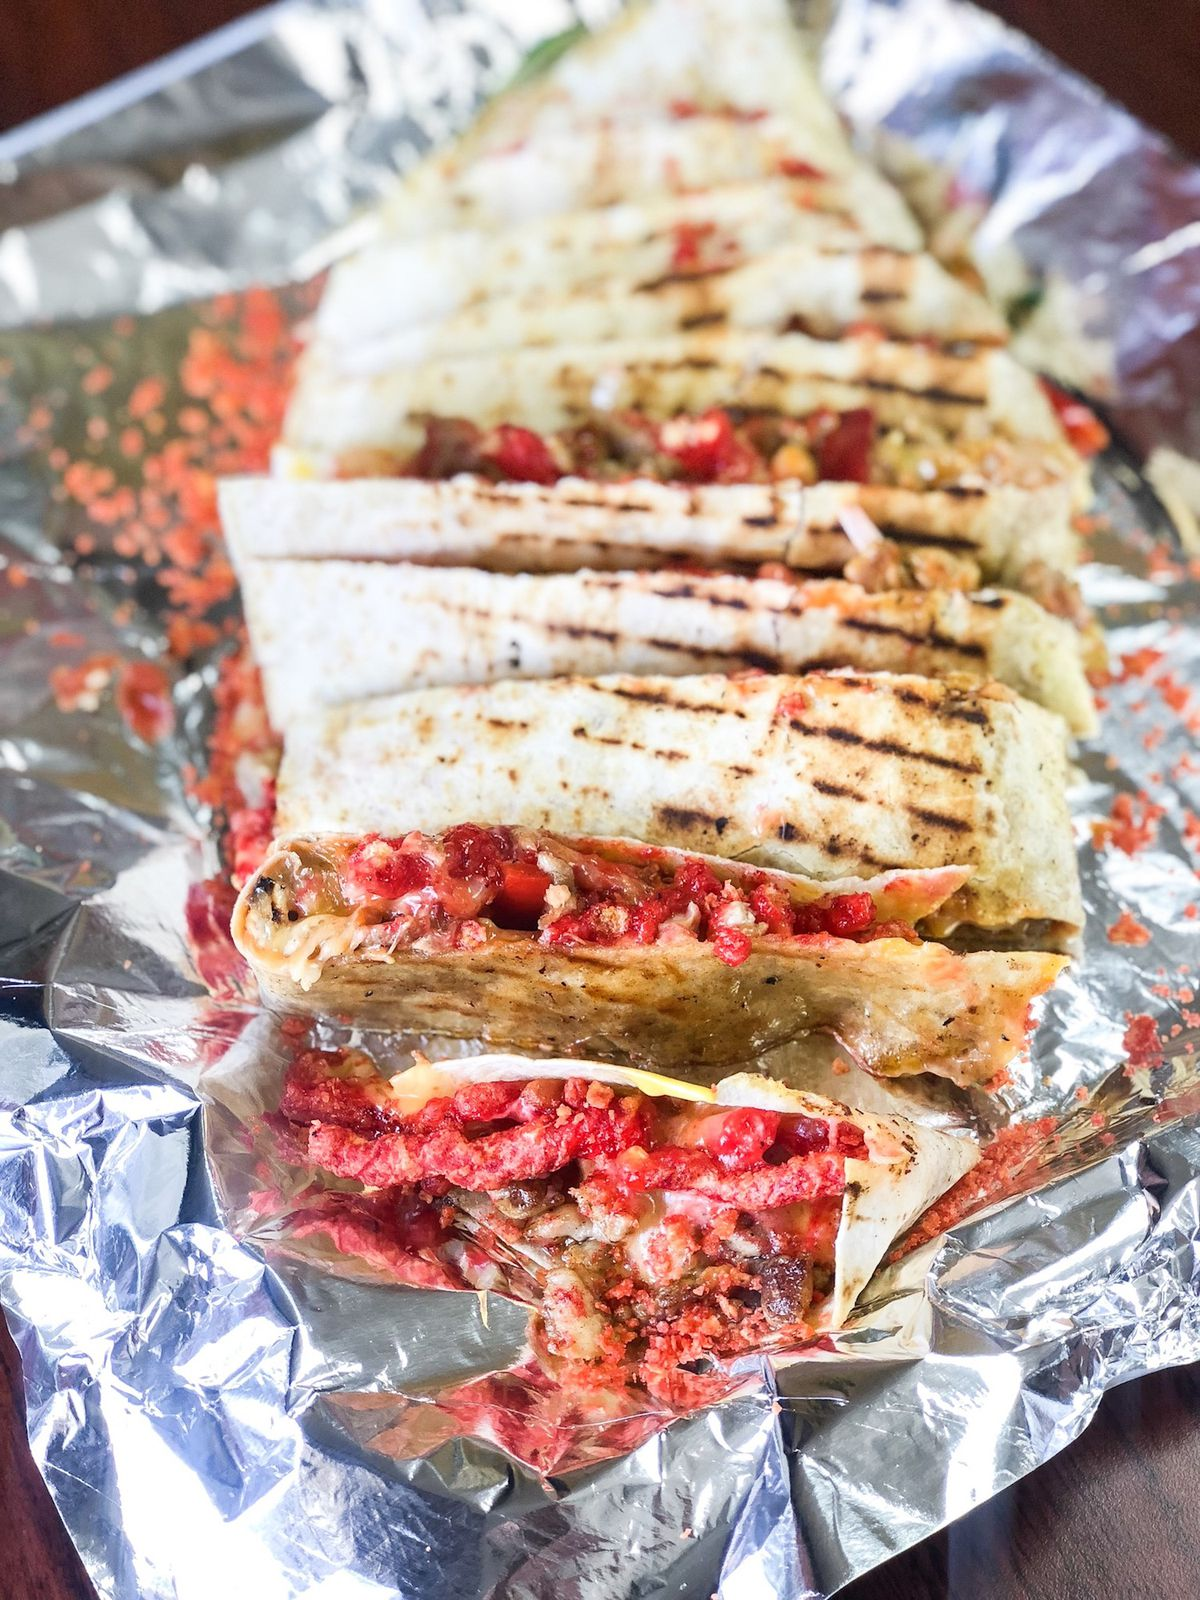 Hot Cheetos Quesadillas Don T Tell The Whole Story At